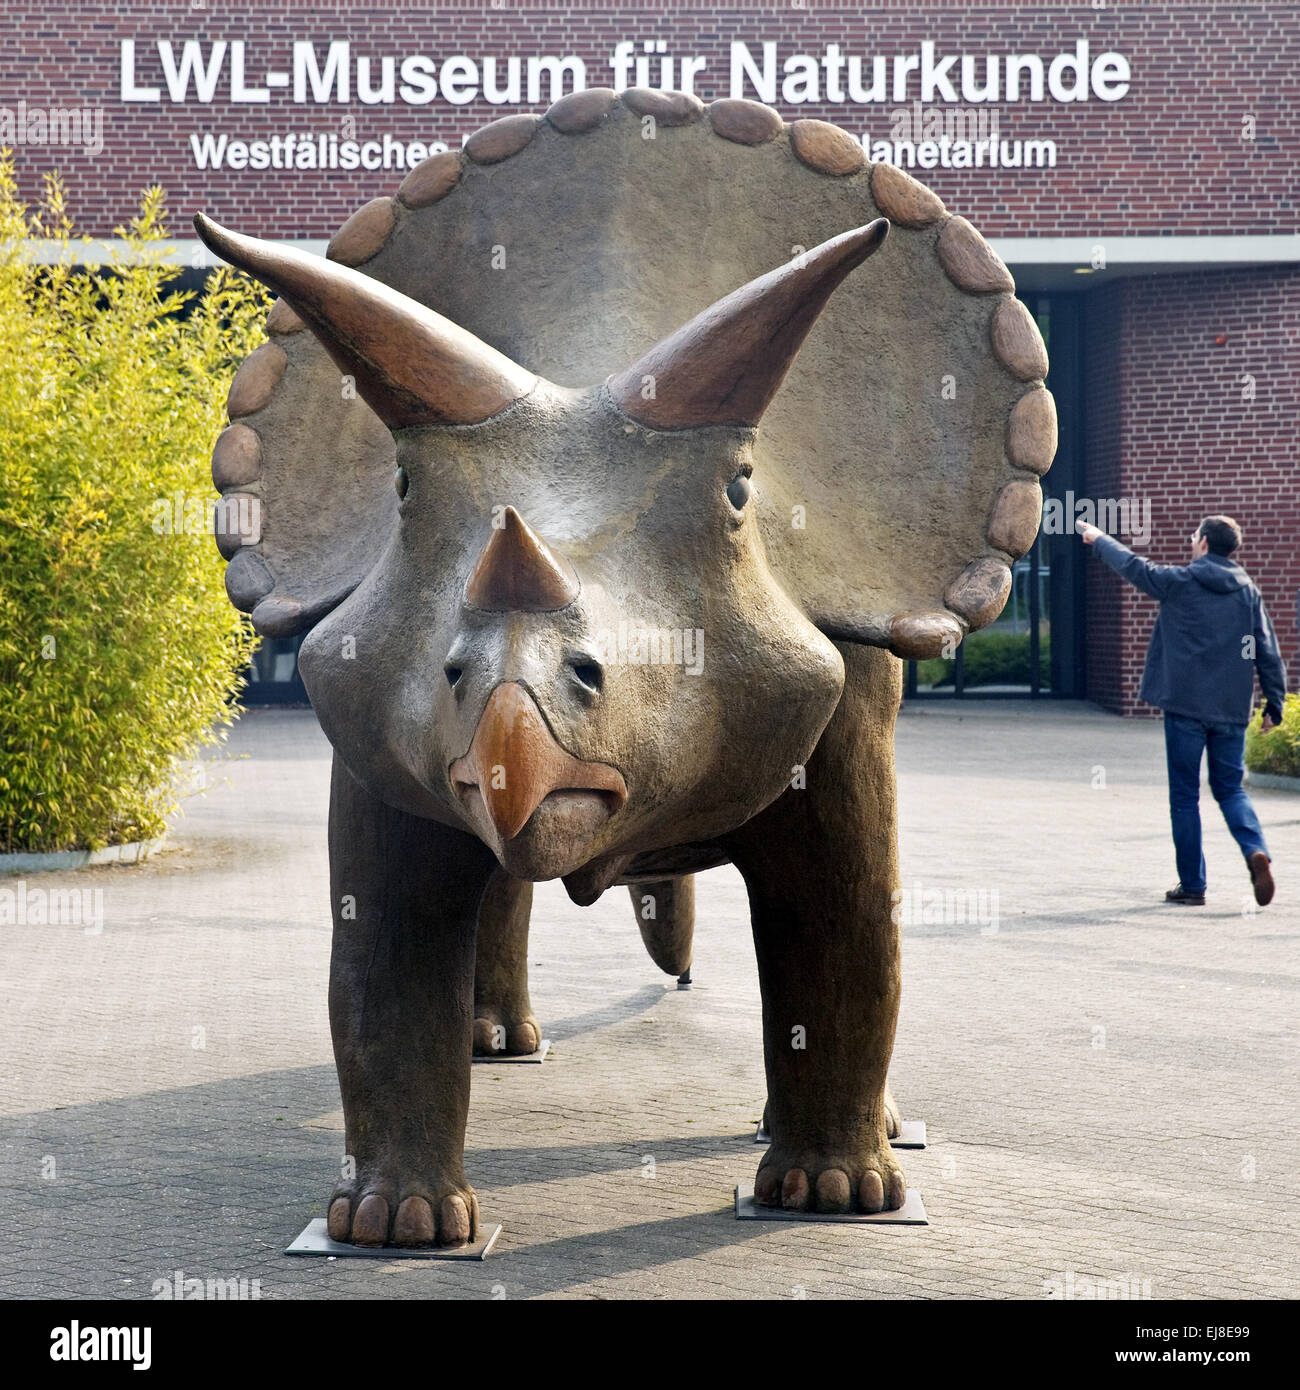 Museum of Natural History, Muenster, Germany - Stock Image